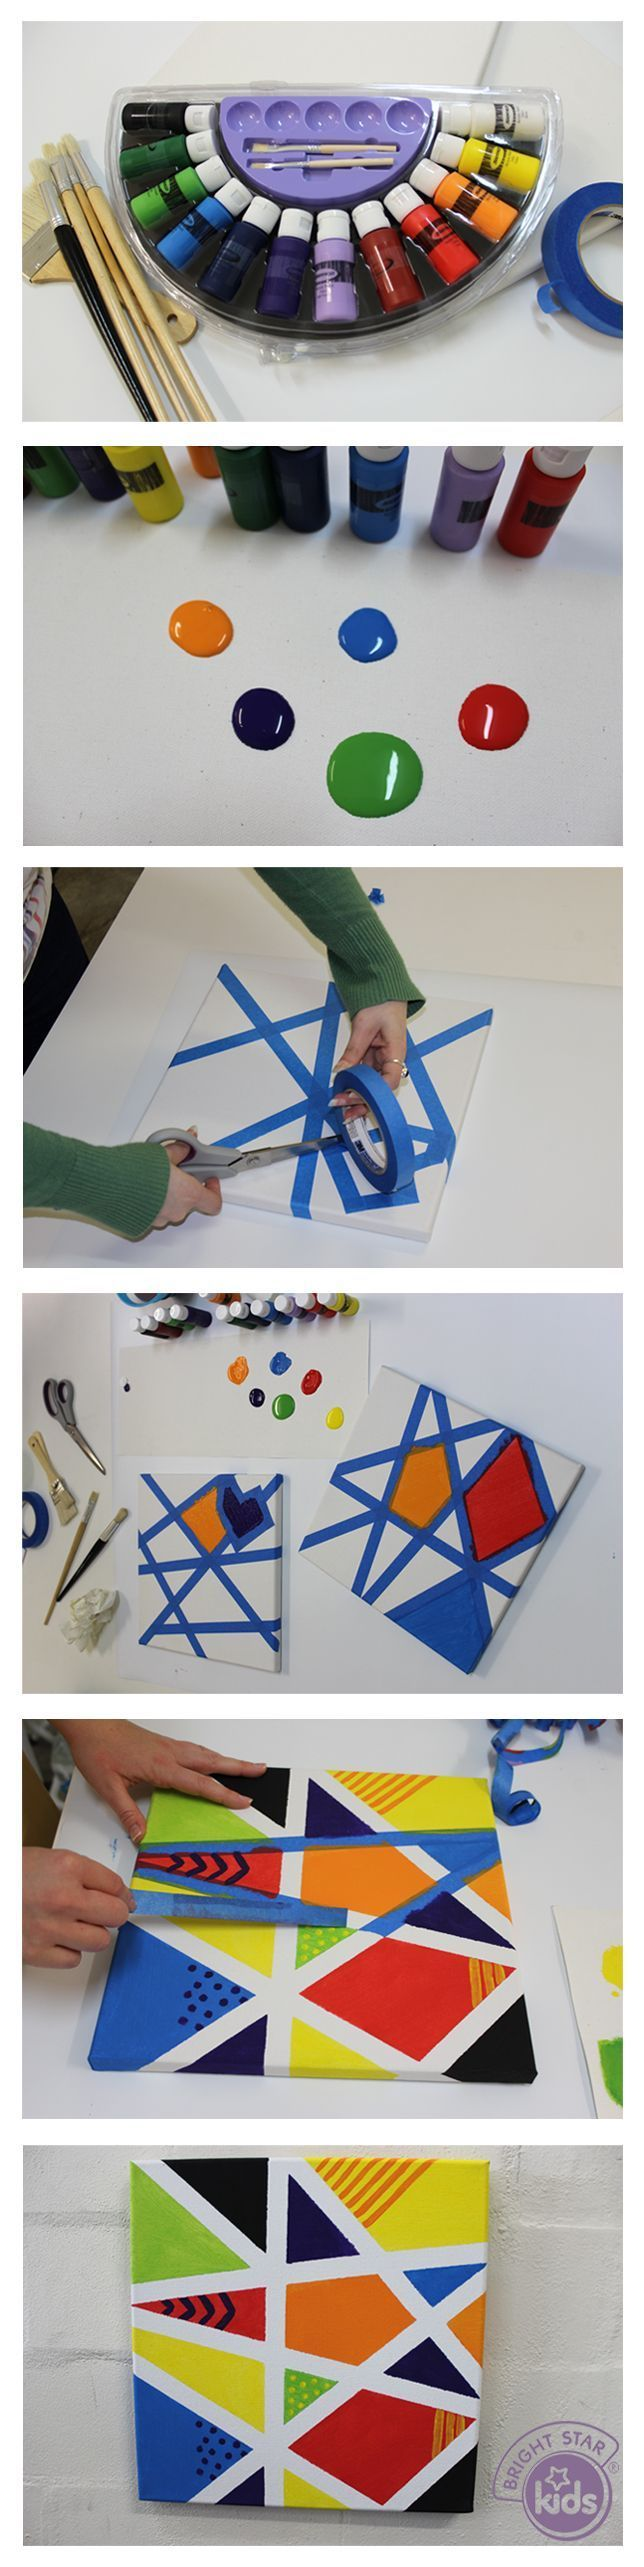 What An Awesome Art Project For Kids Littlepassports Arts And